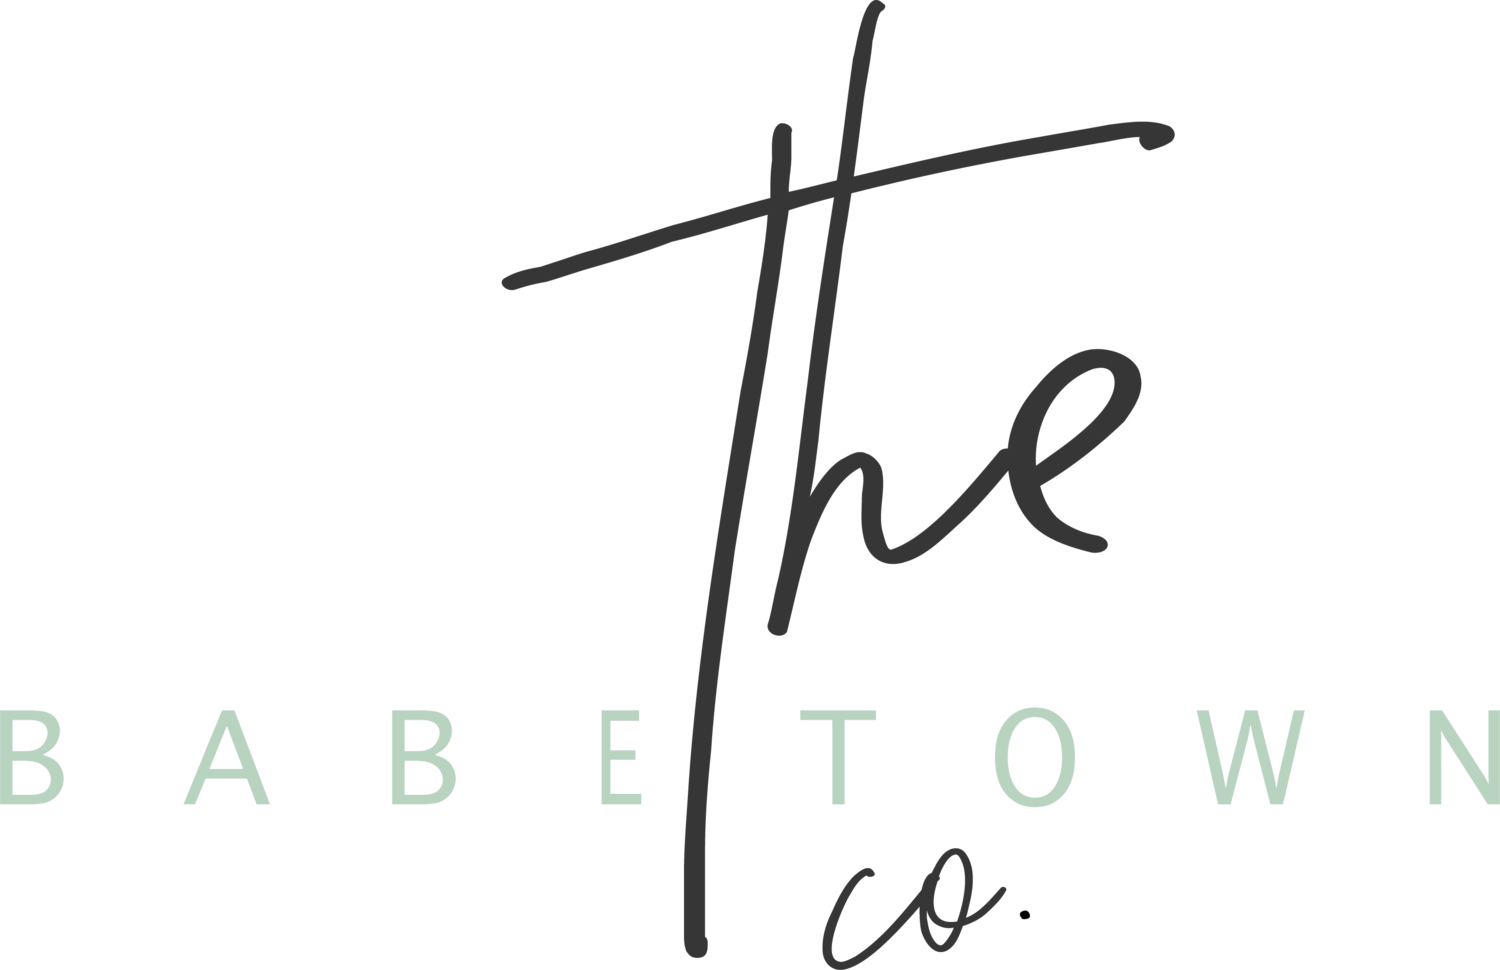 The Babetown Collective